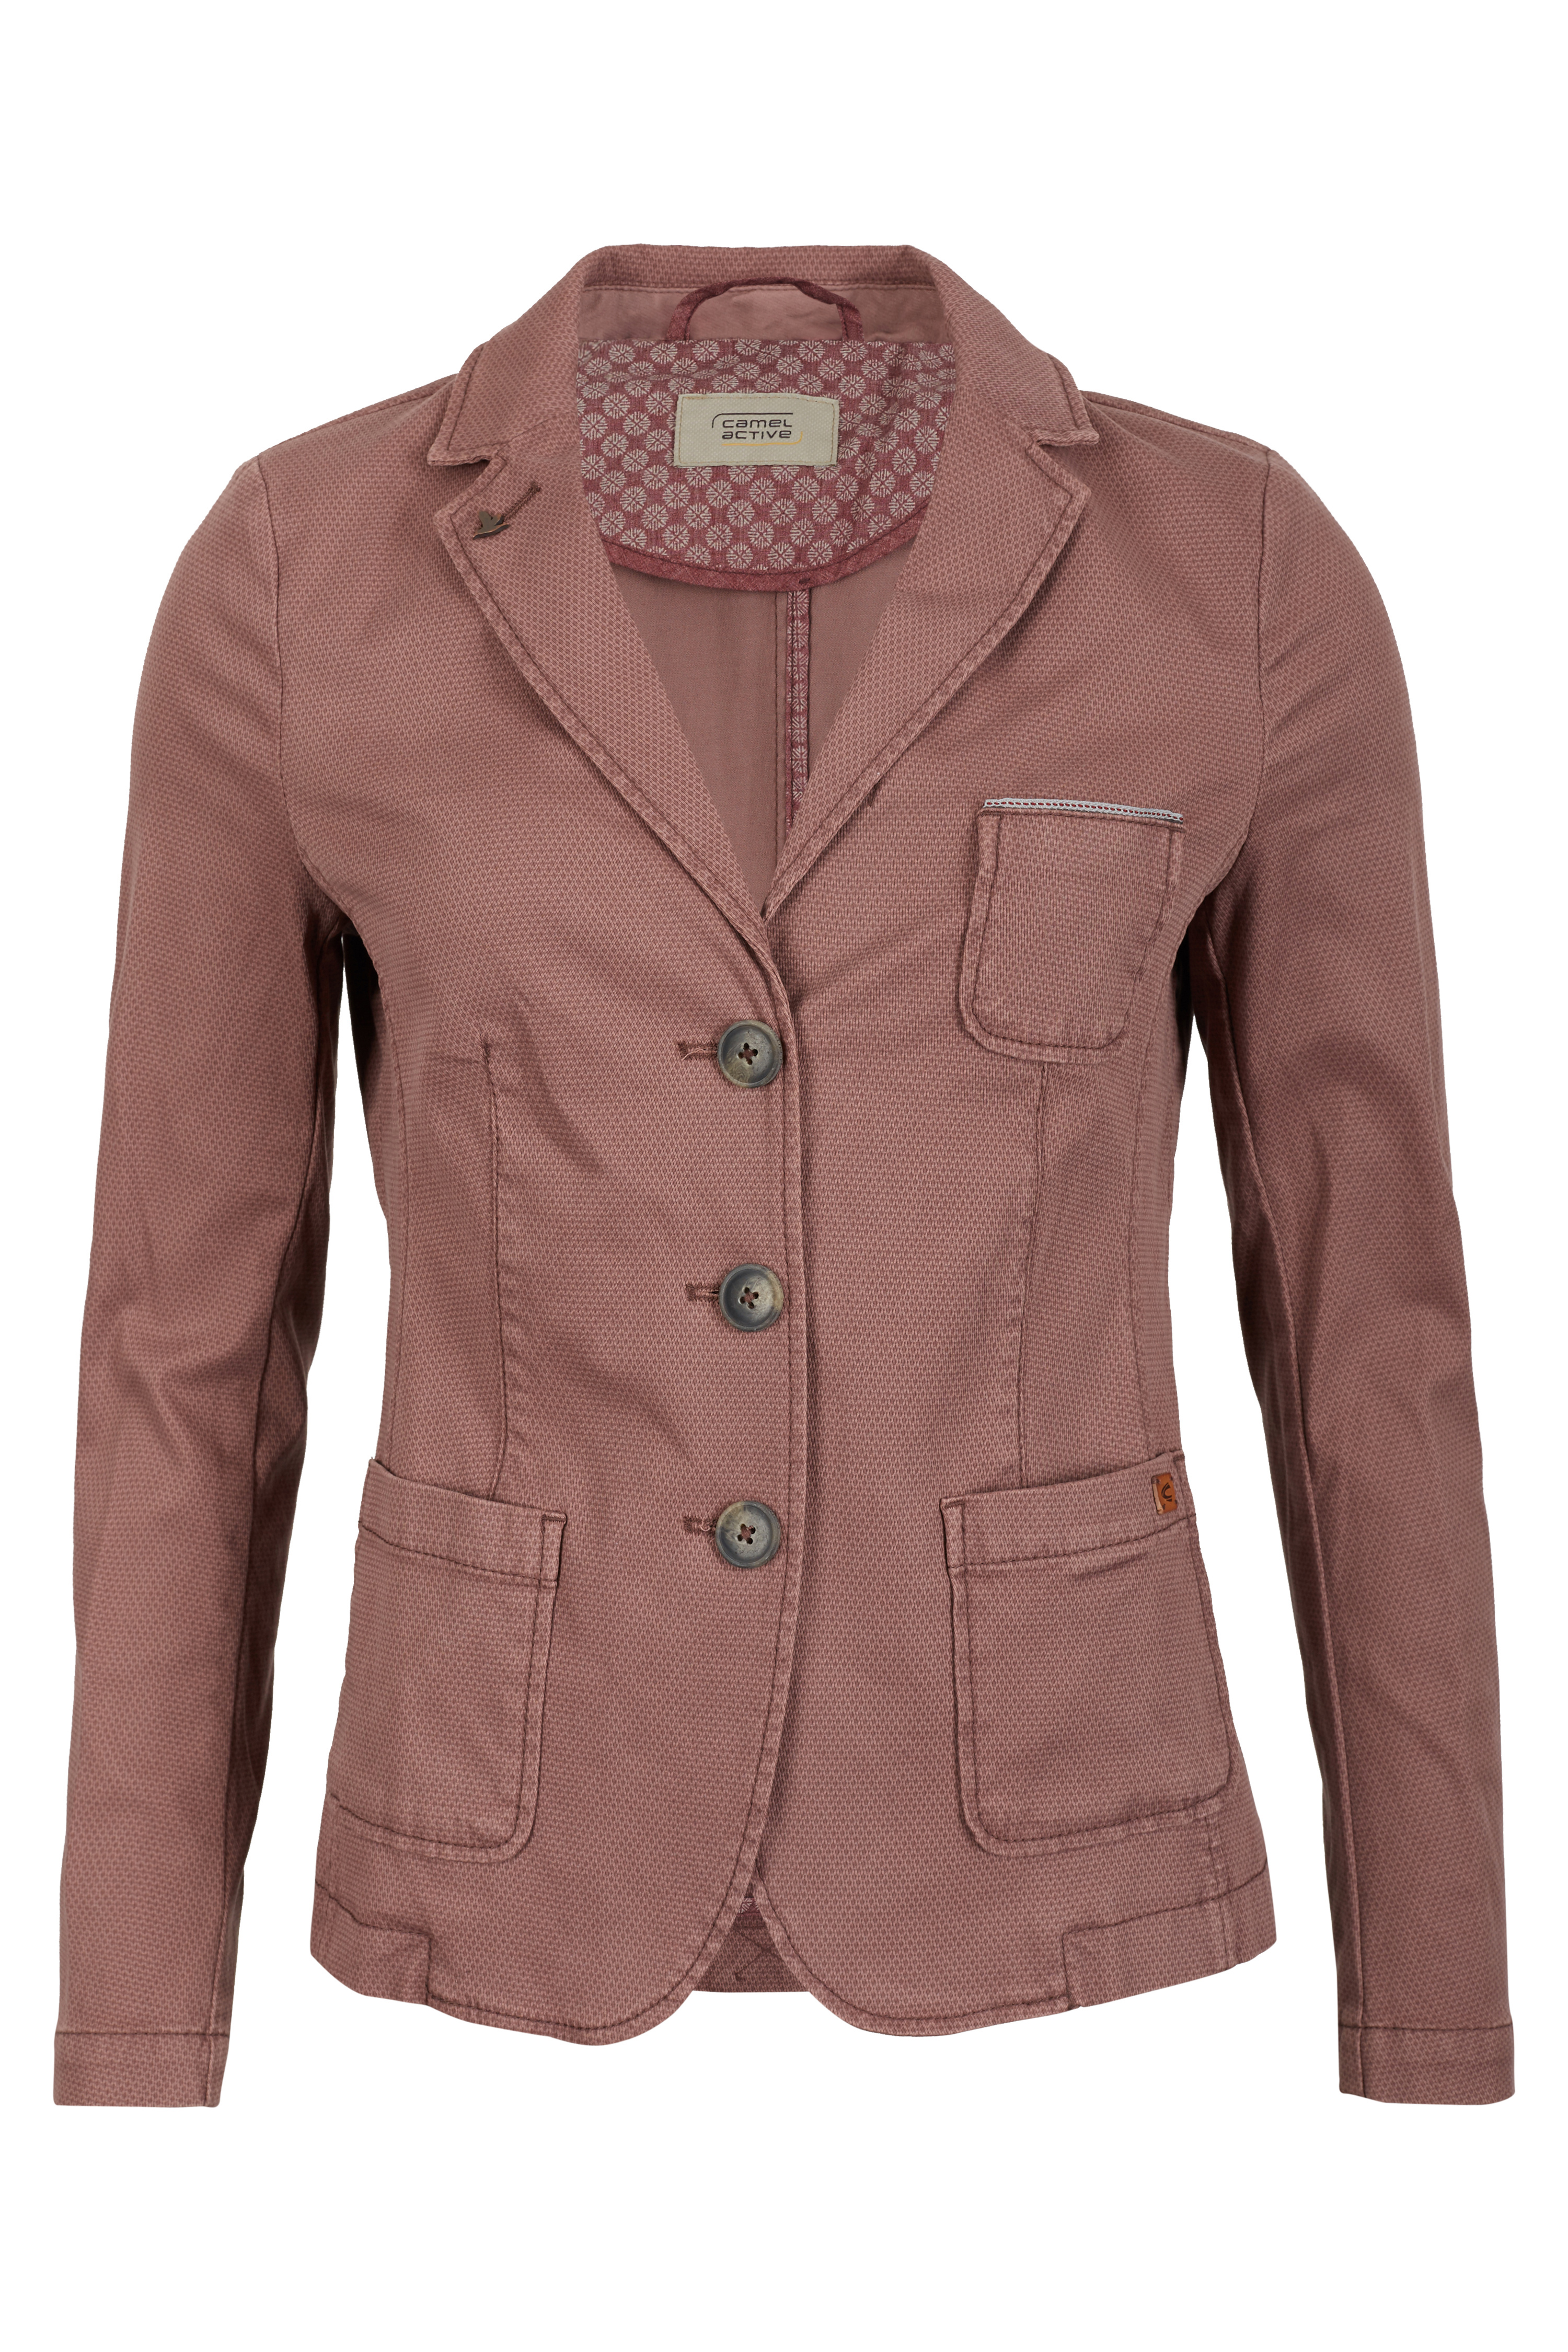 camel active damen blazer mit stretch 3 knopf blazer rose. Black Bedroom Furniture Sets. Home Design Ideas